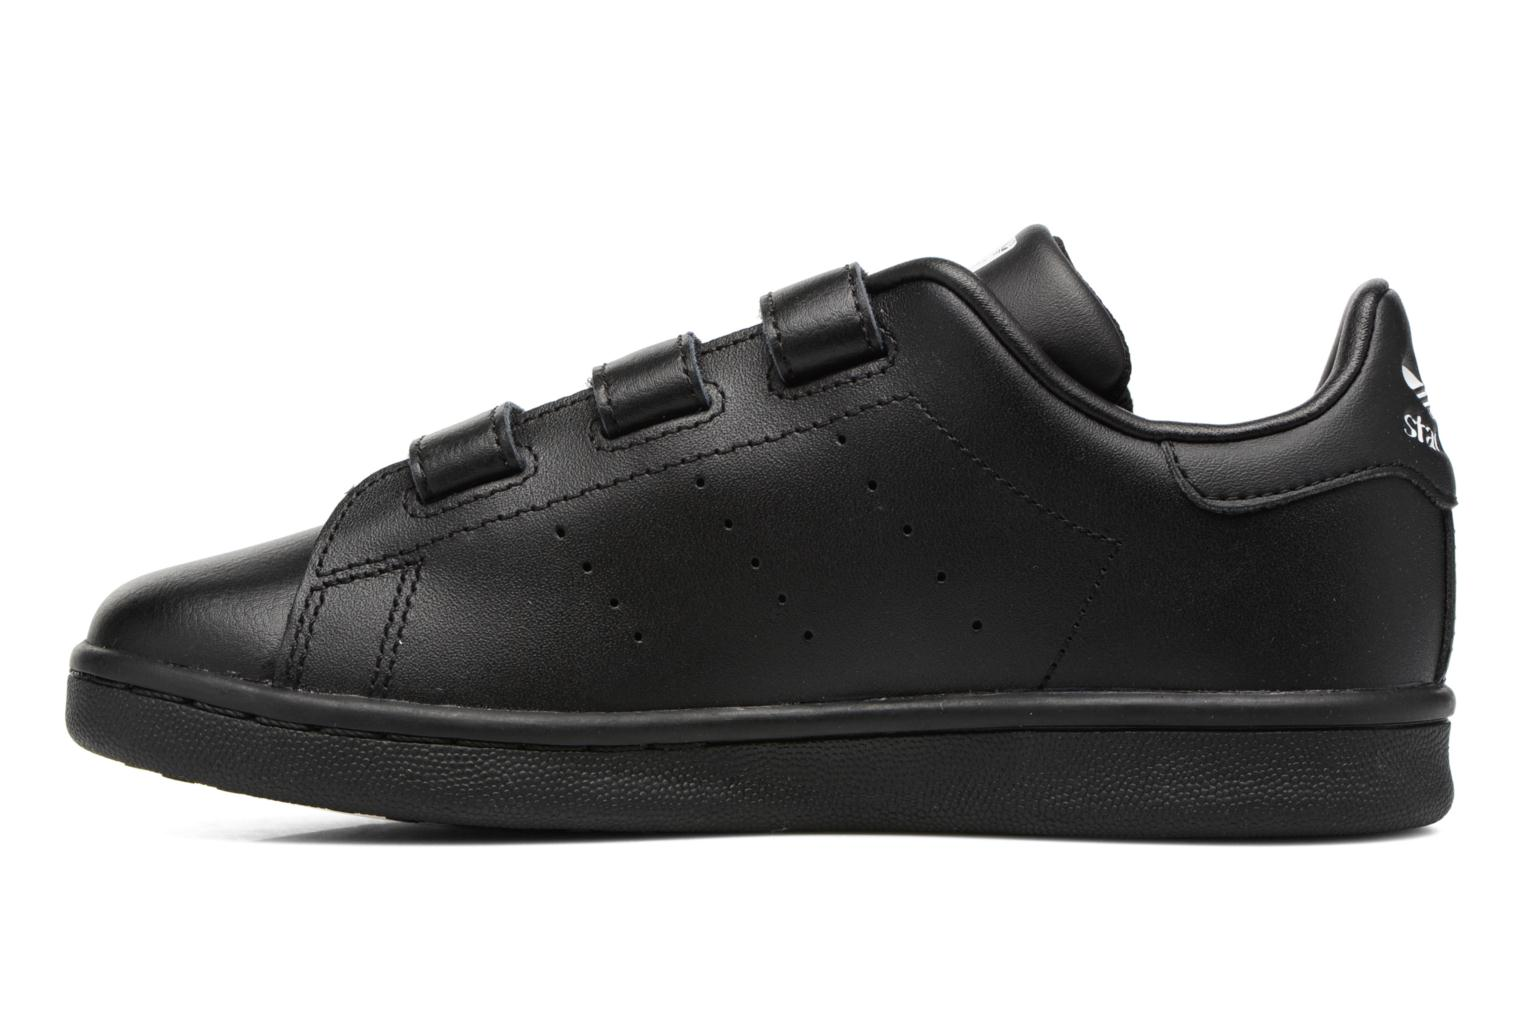 Stan Smith Cf C NOIR/NOIR/FTWBLA